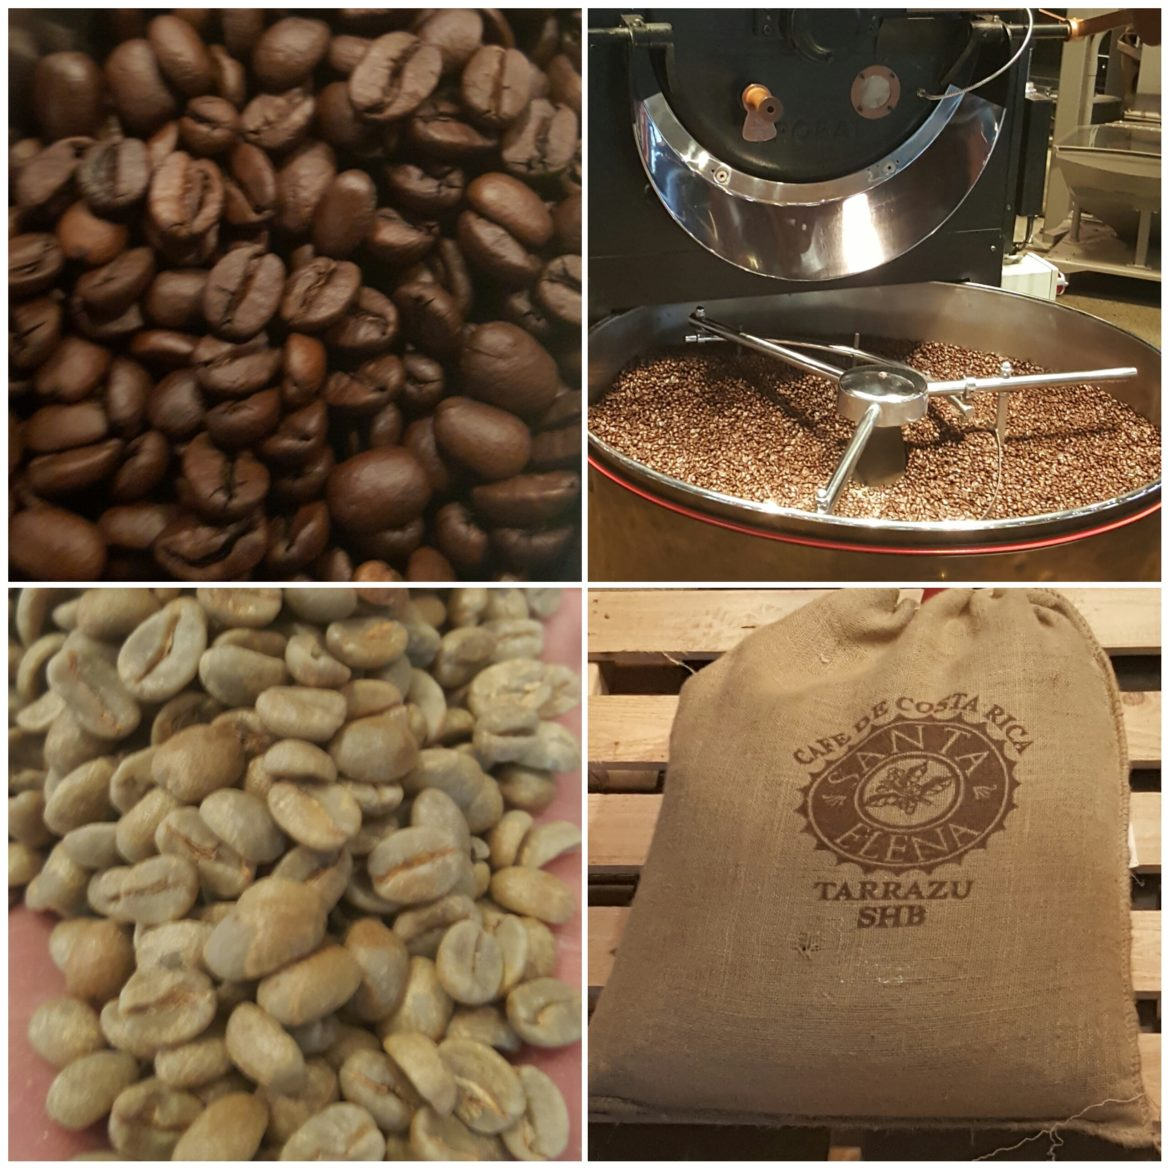 Roasting Coffee At Starbucks: A Quick Overview